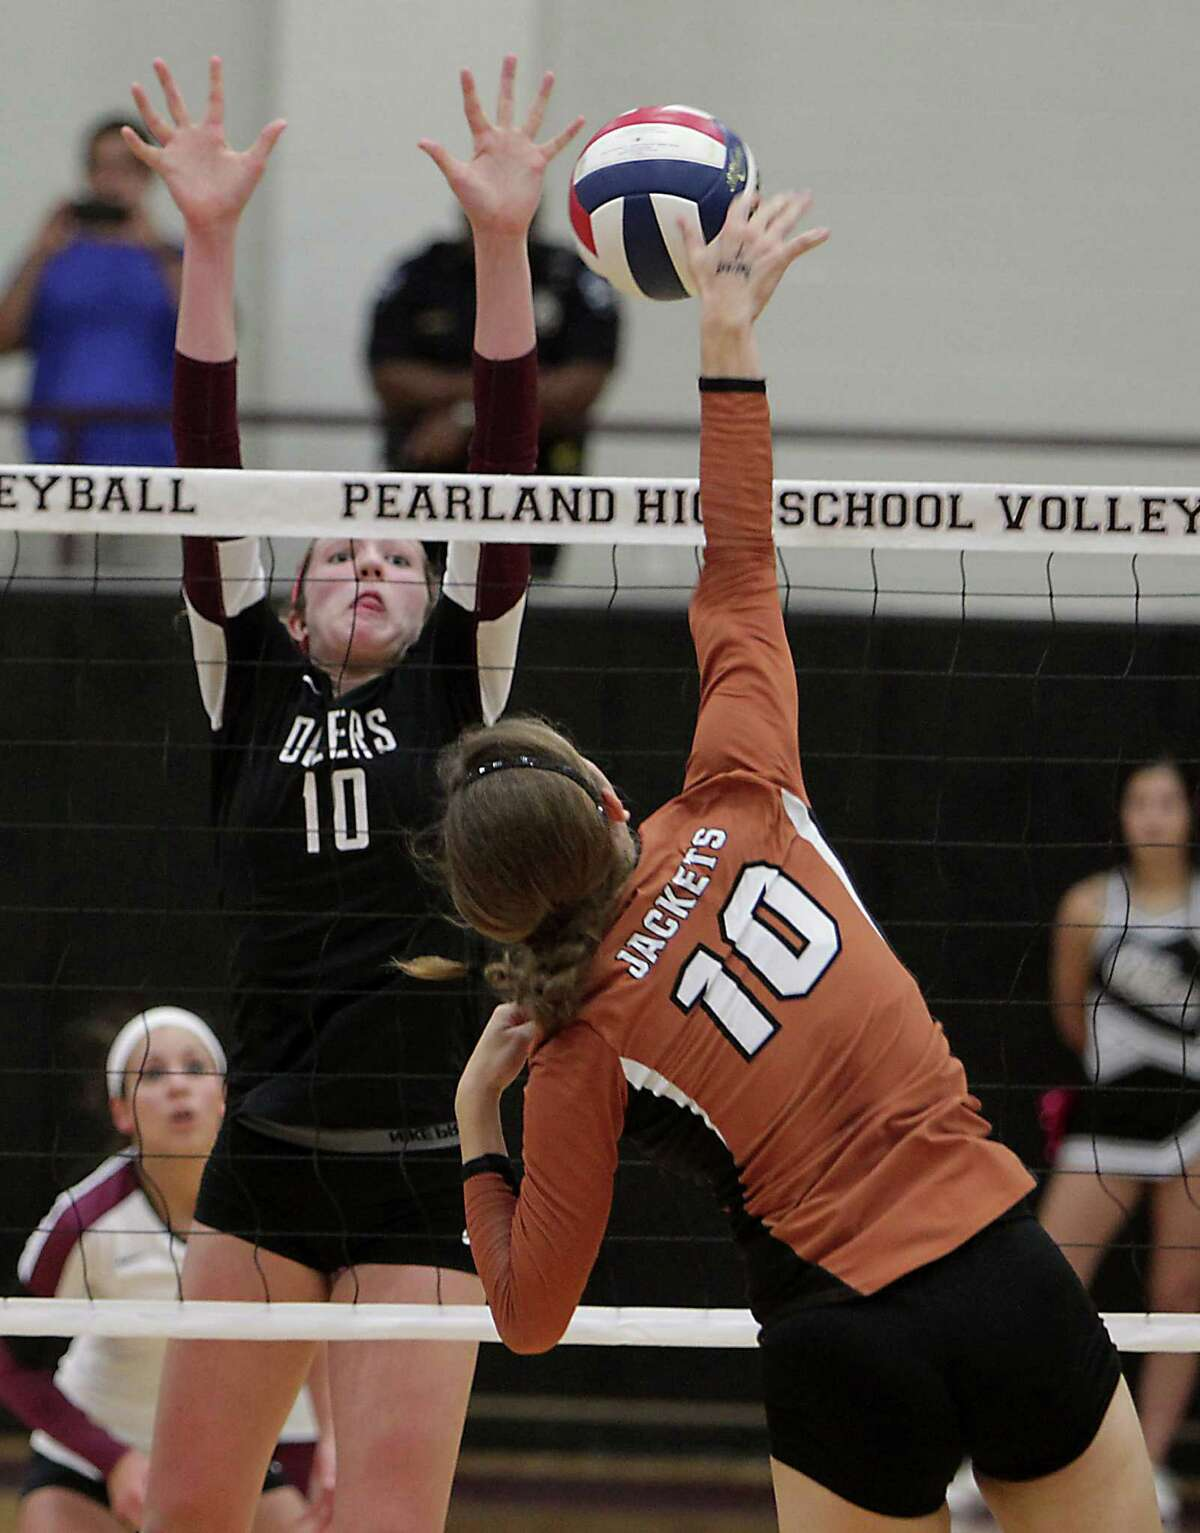 Pearland's Brooke Botkin left, and Alvin's Meagan Graham right, during high school volleyball game action at Pearland High School Tuesday, Oct. 15, 2013, in Pearland.